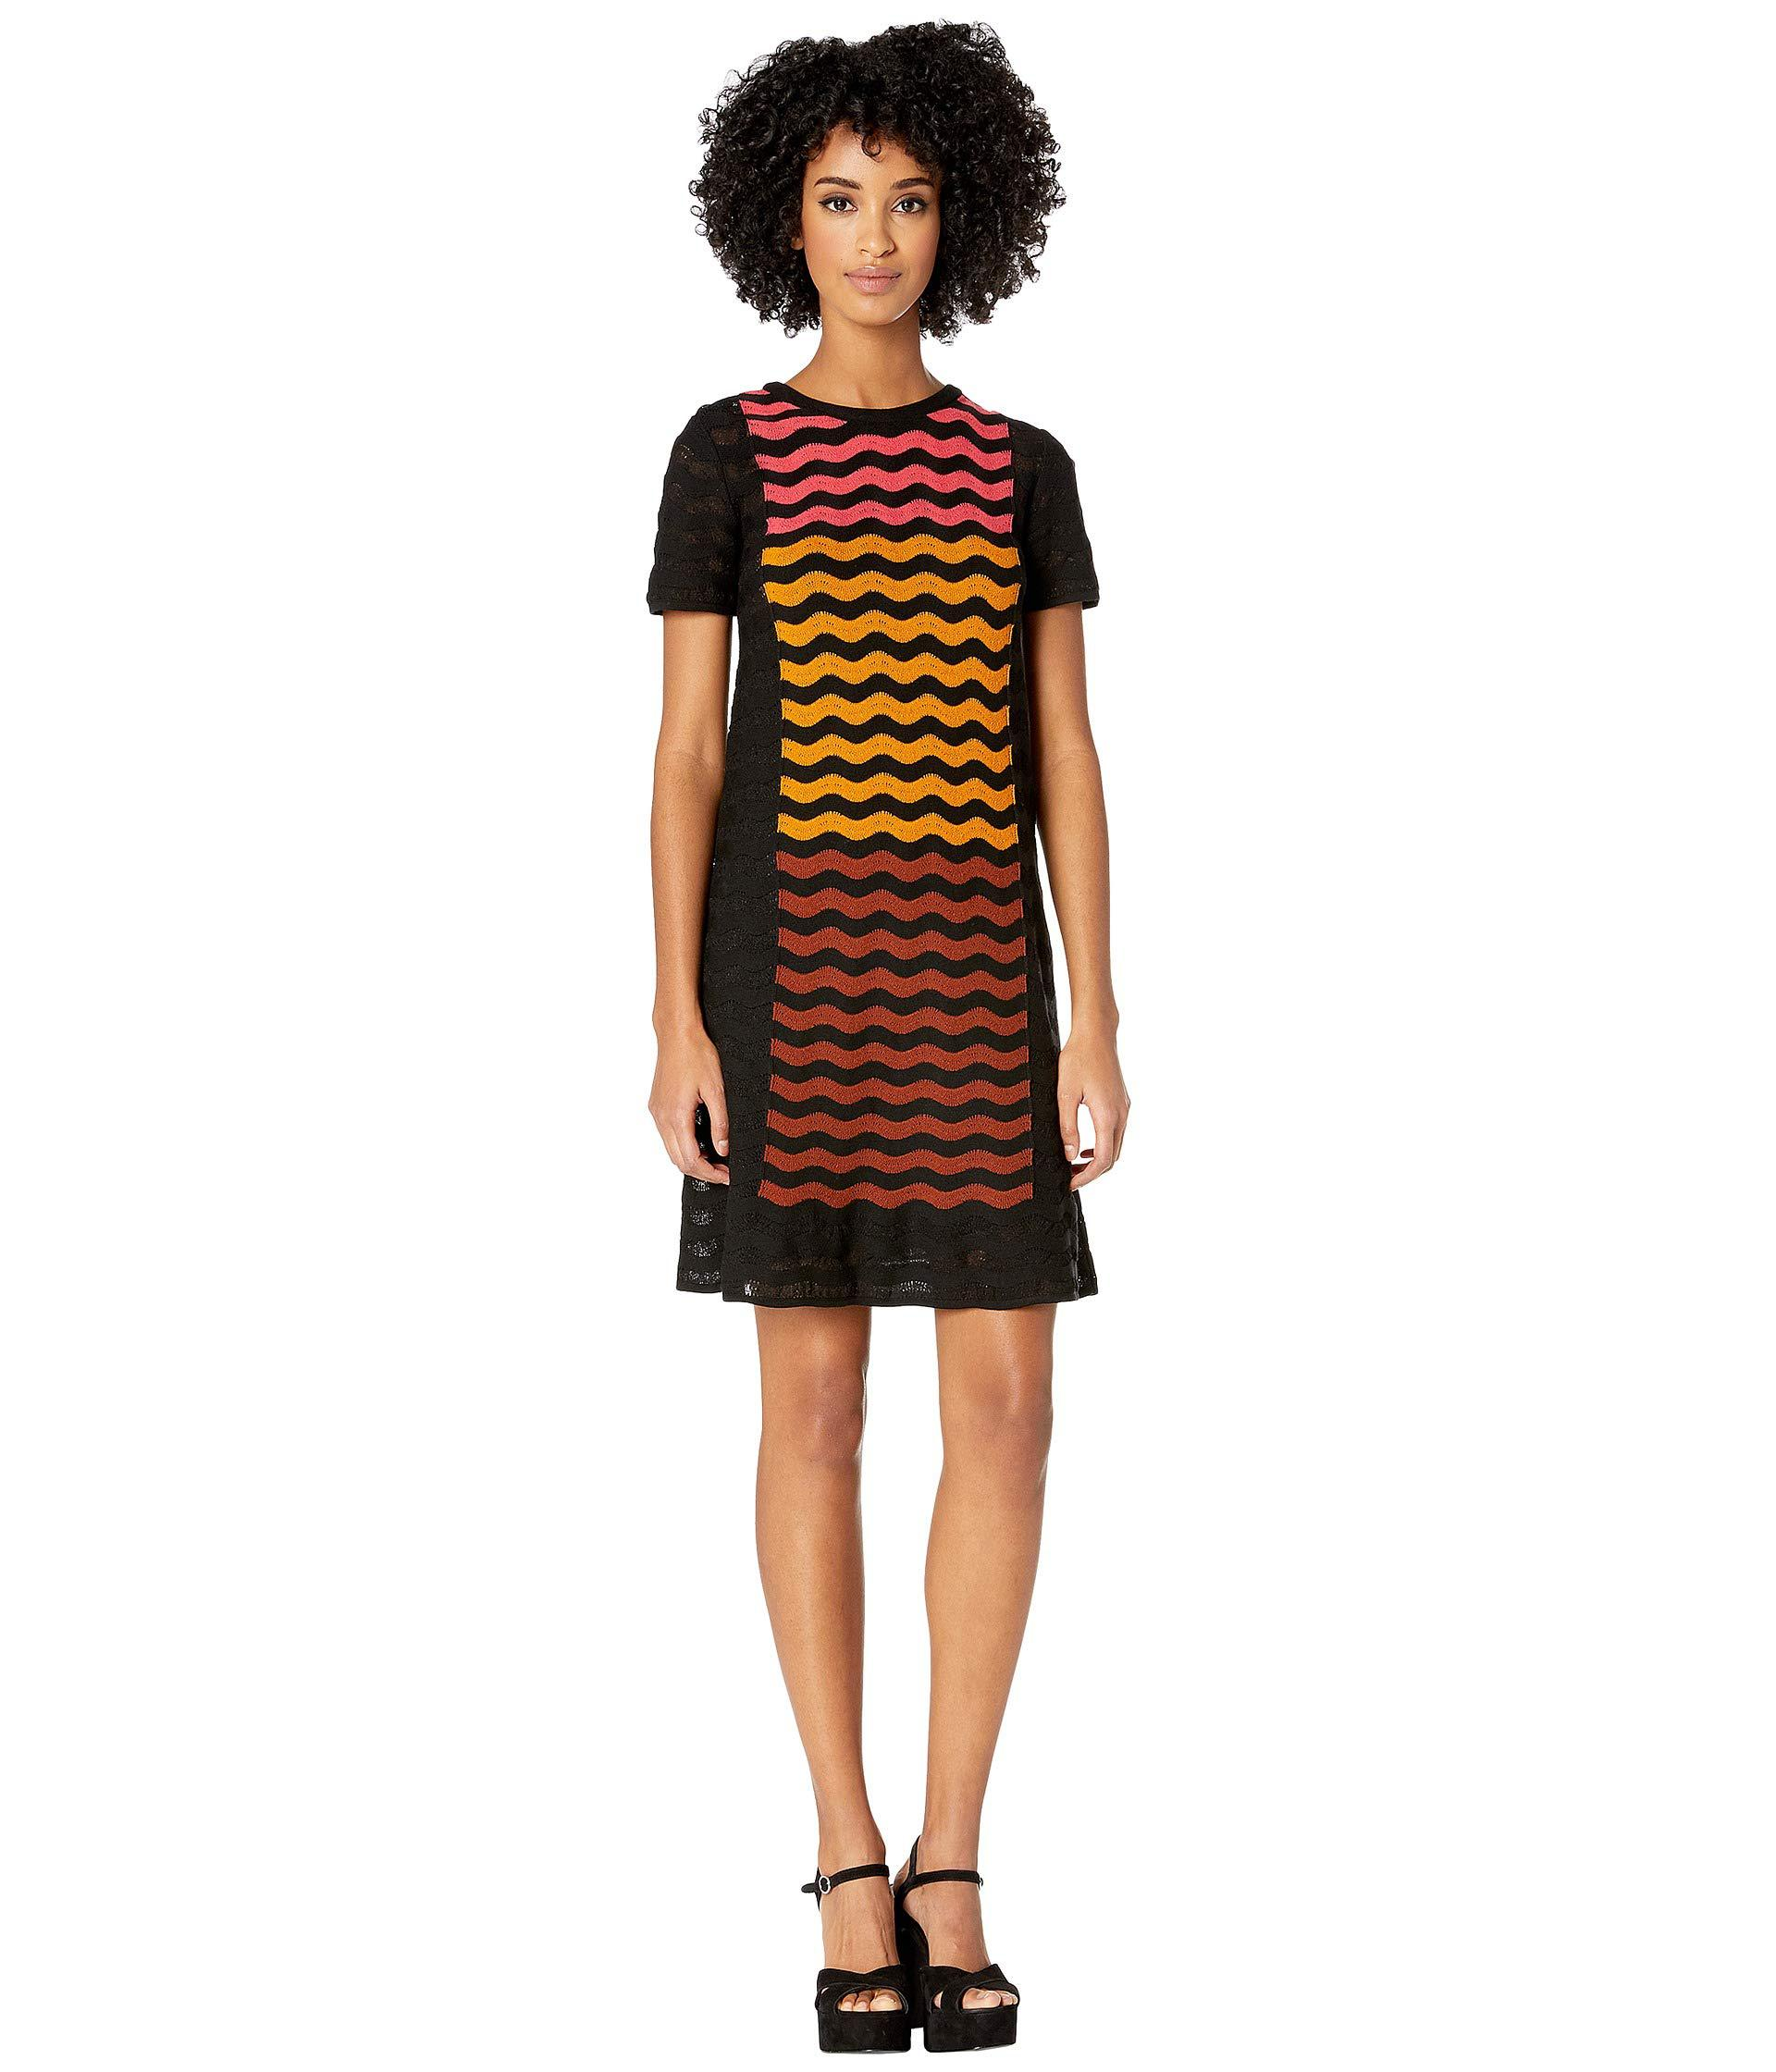 cb5447e139c9a9 M Missoni - Ripple Intarsia Short Sleeve Dress (black) Women s Dress -  Lyst. View fullscreen